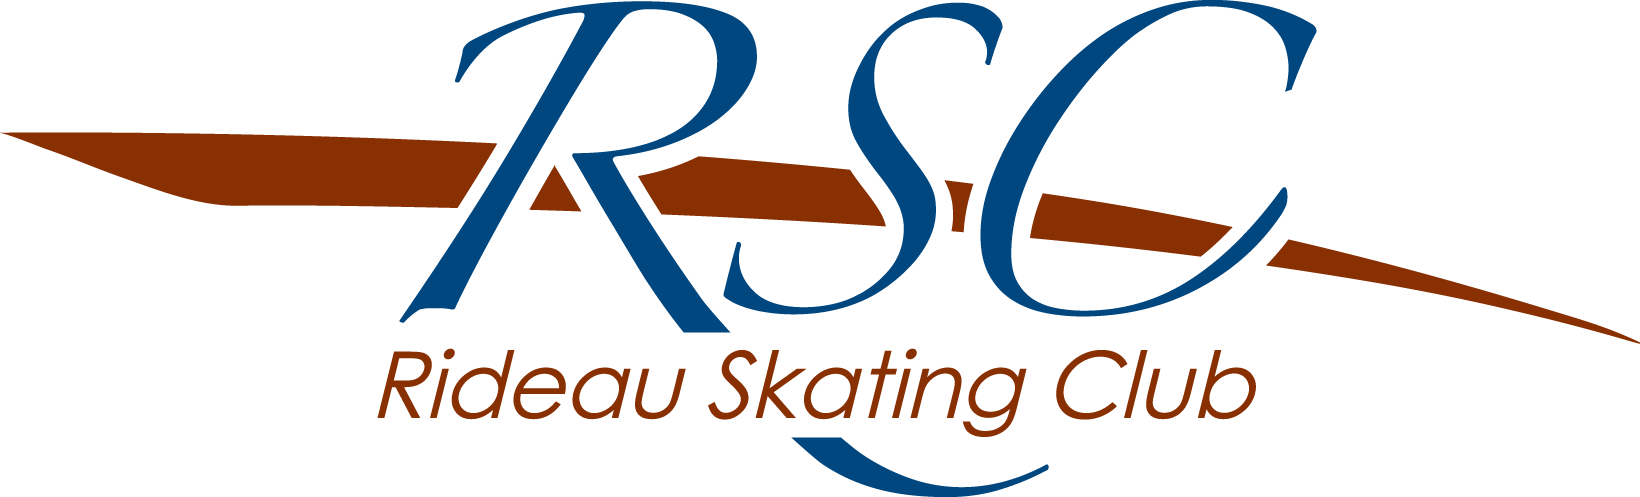 Rideau Skating Club